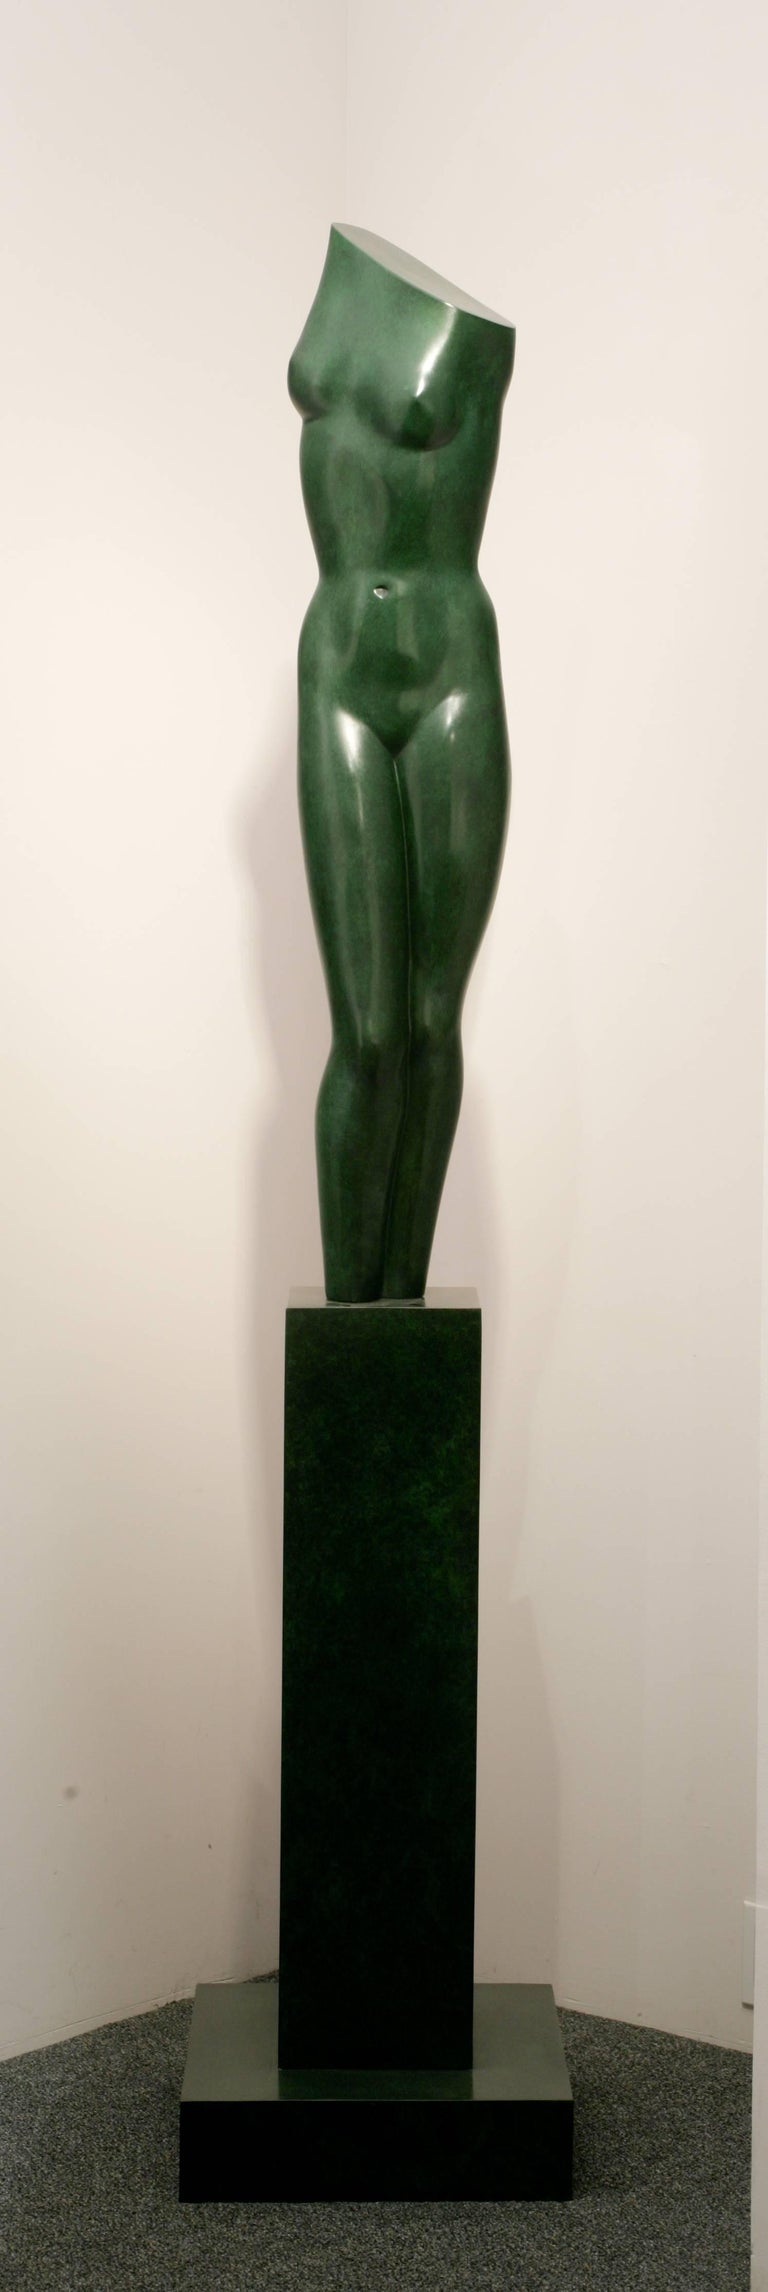 Spring II - Gold Figurative Sculpture by Anita Huffington